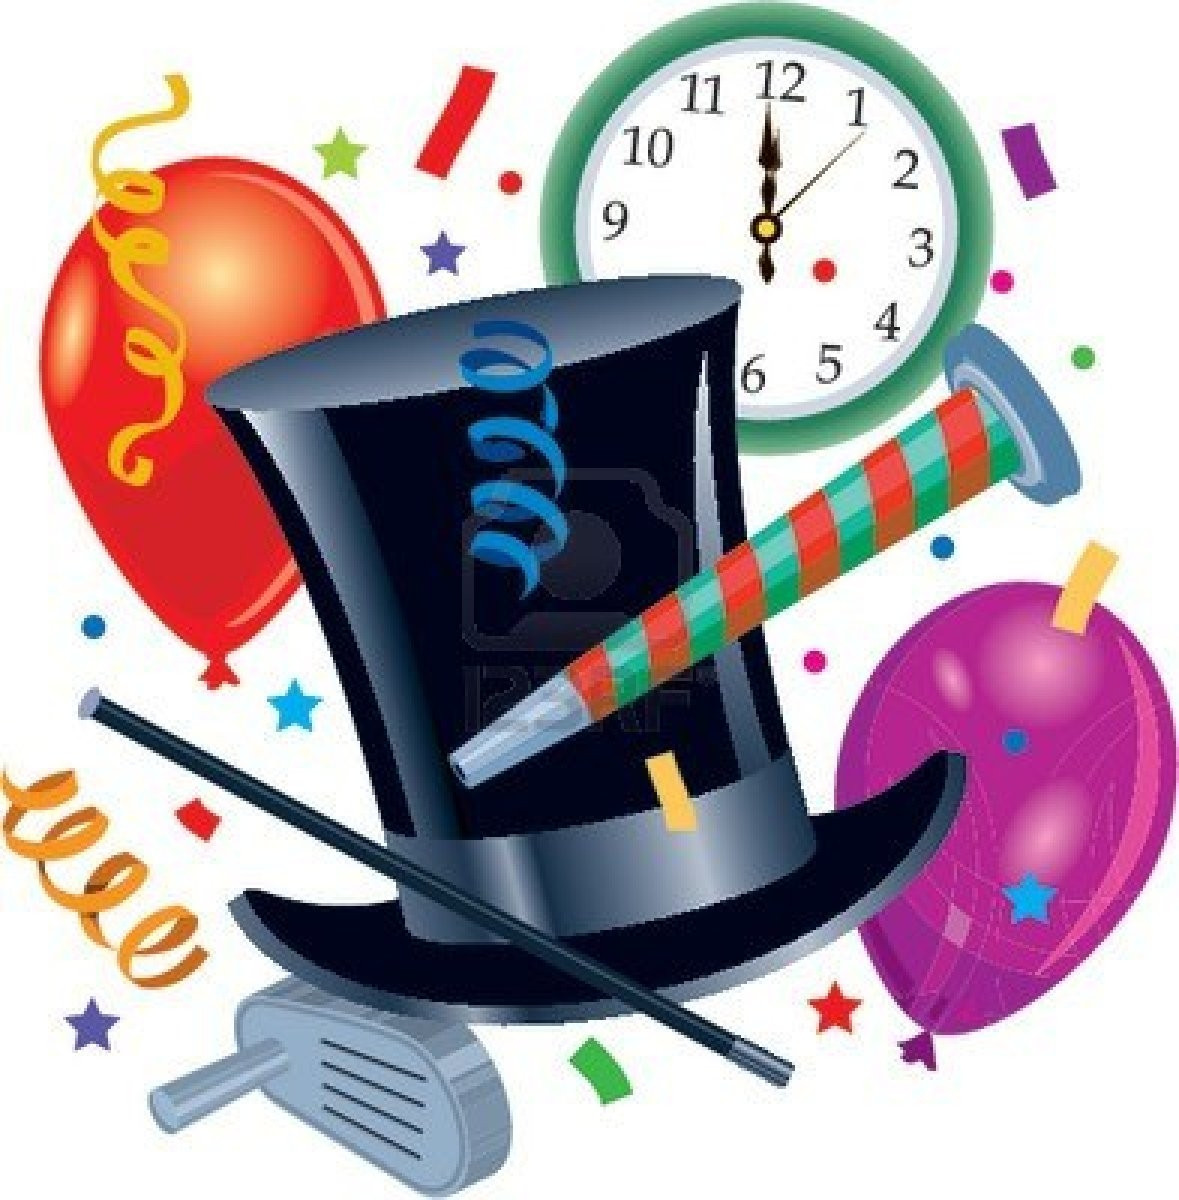 new years eve clipart at getdrawings com free for personal use new rh getdrawings com clipart new years clipart new years 2018